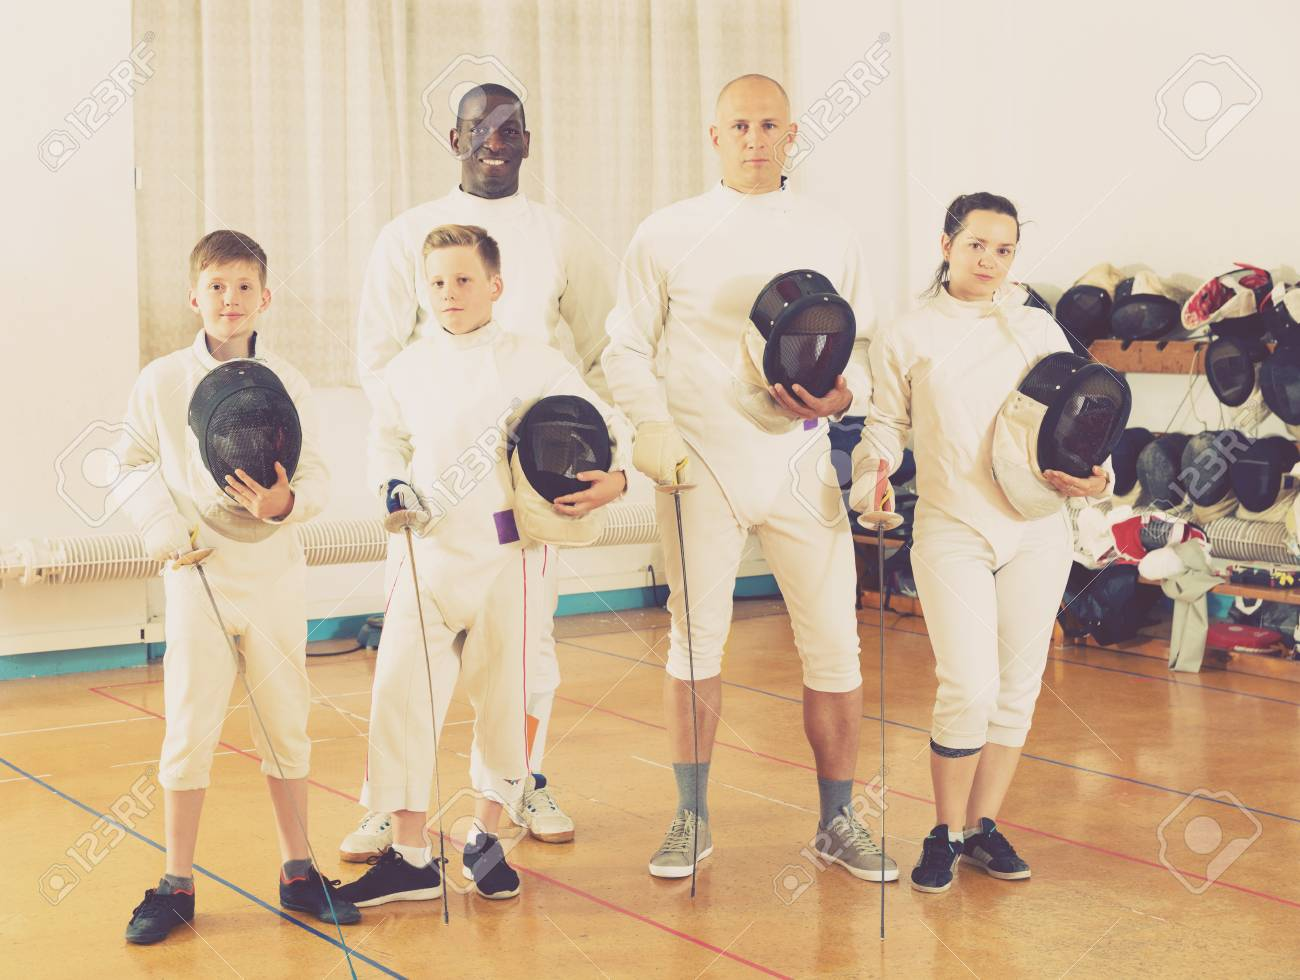 Portrait of happy adult and teen fencers in full fencing outfit